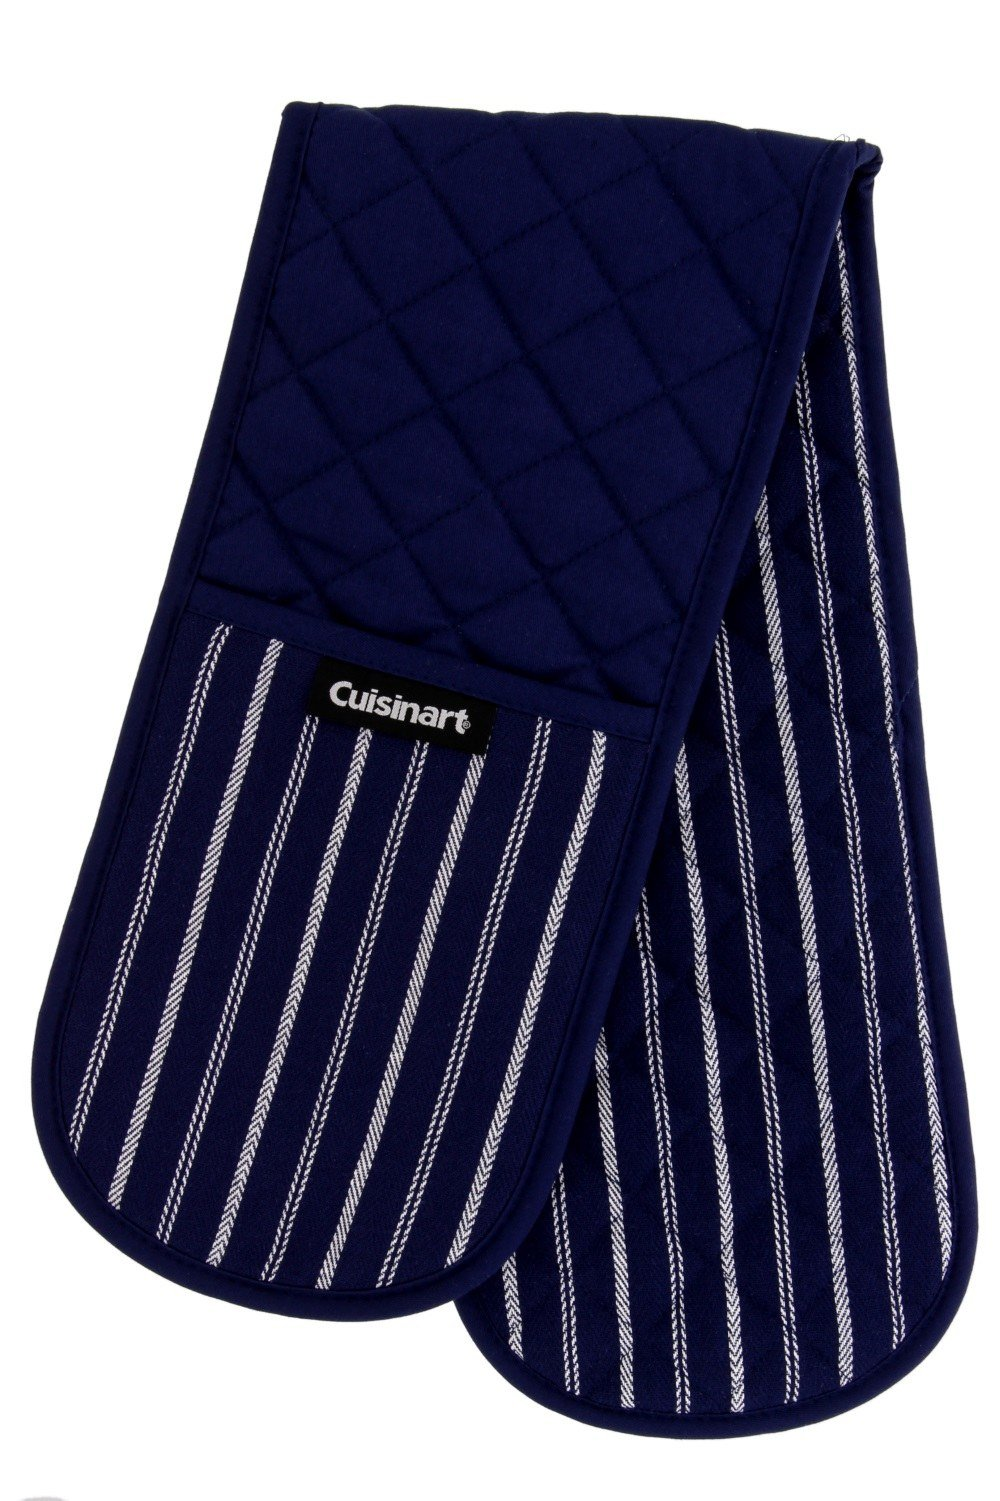 """Cuisinart Quilted Heat Resistant Double Oven Mitt/Glove, Twill Stripe, 7.5"""" x 35"""", Great for Cooking, Baking, and Handling Hot Pots & Pans- Navy Aura"""